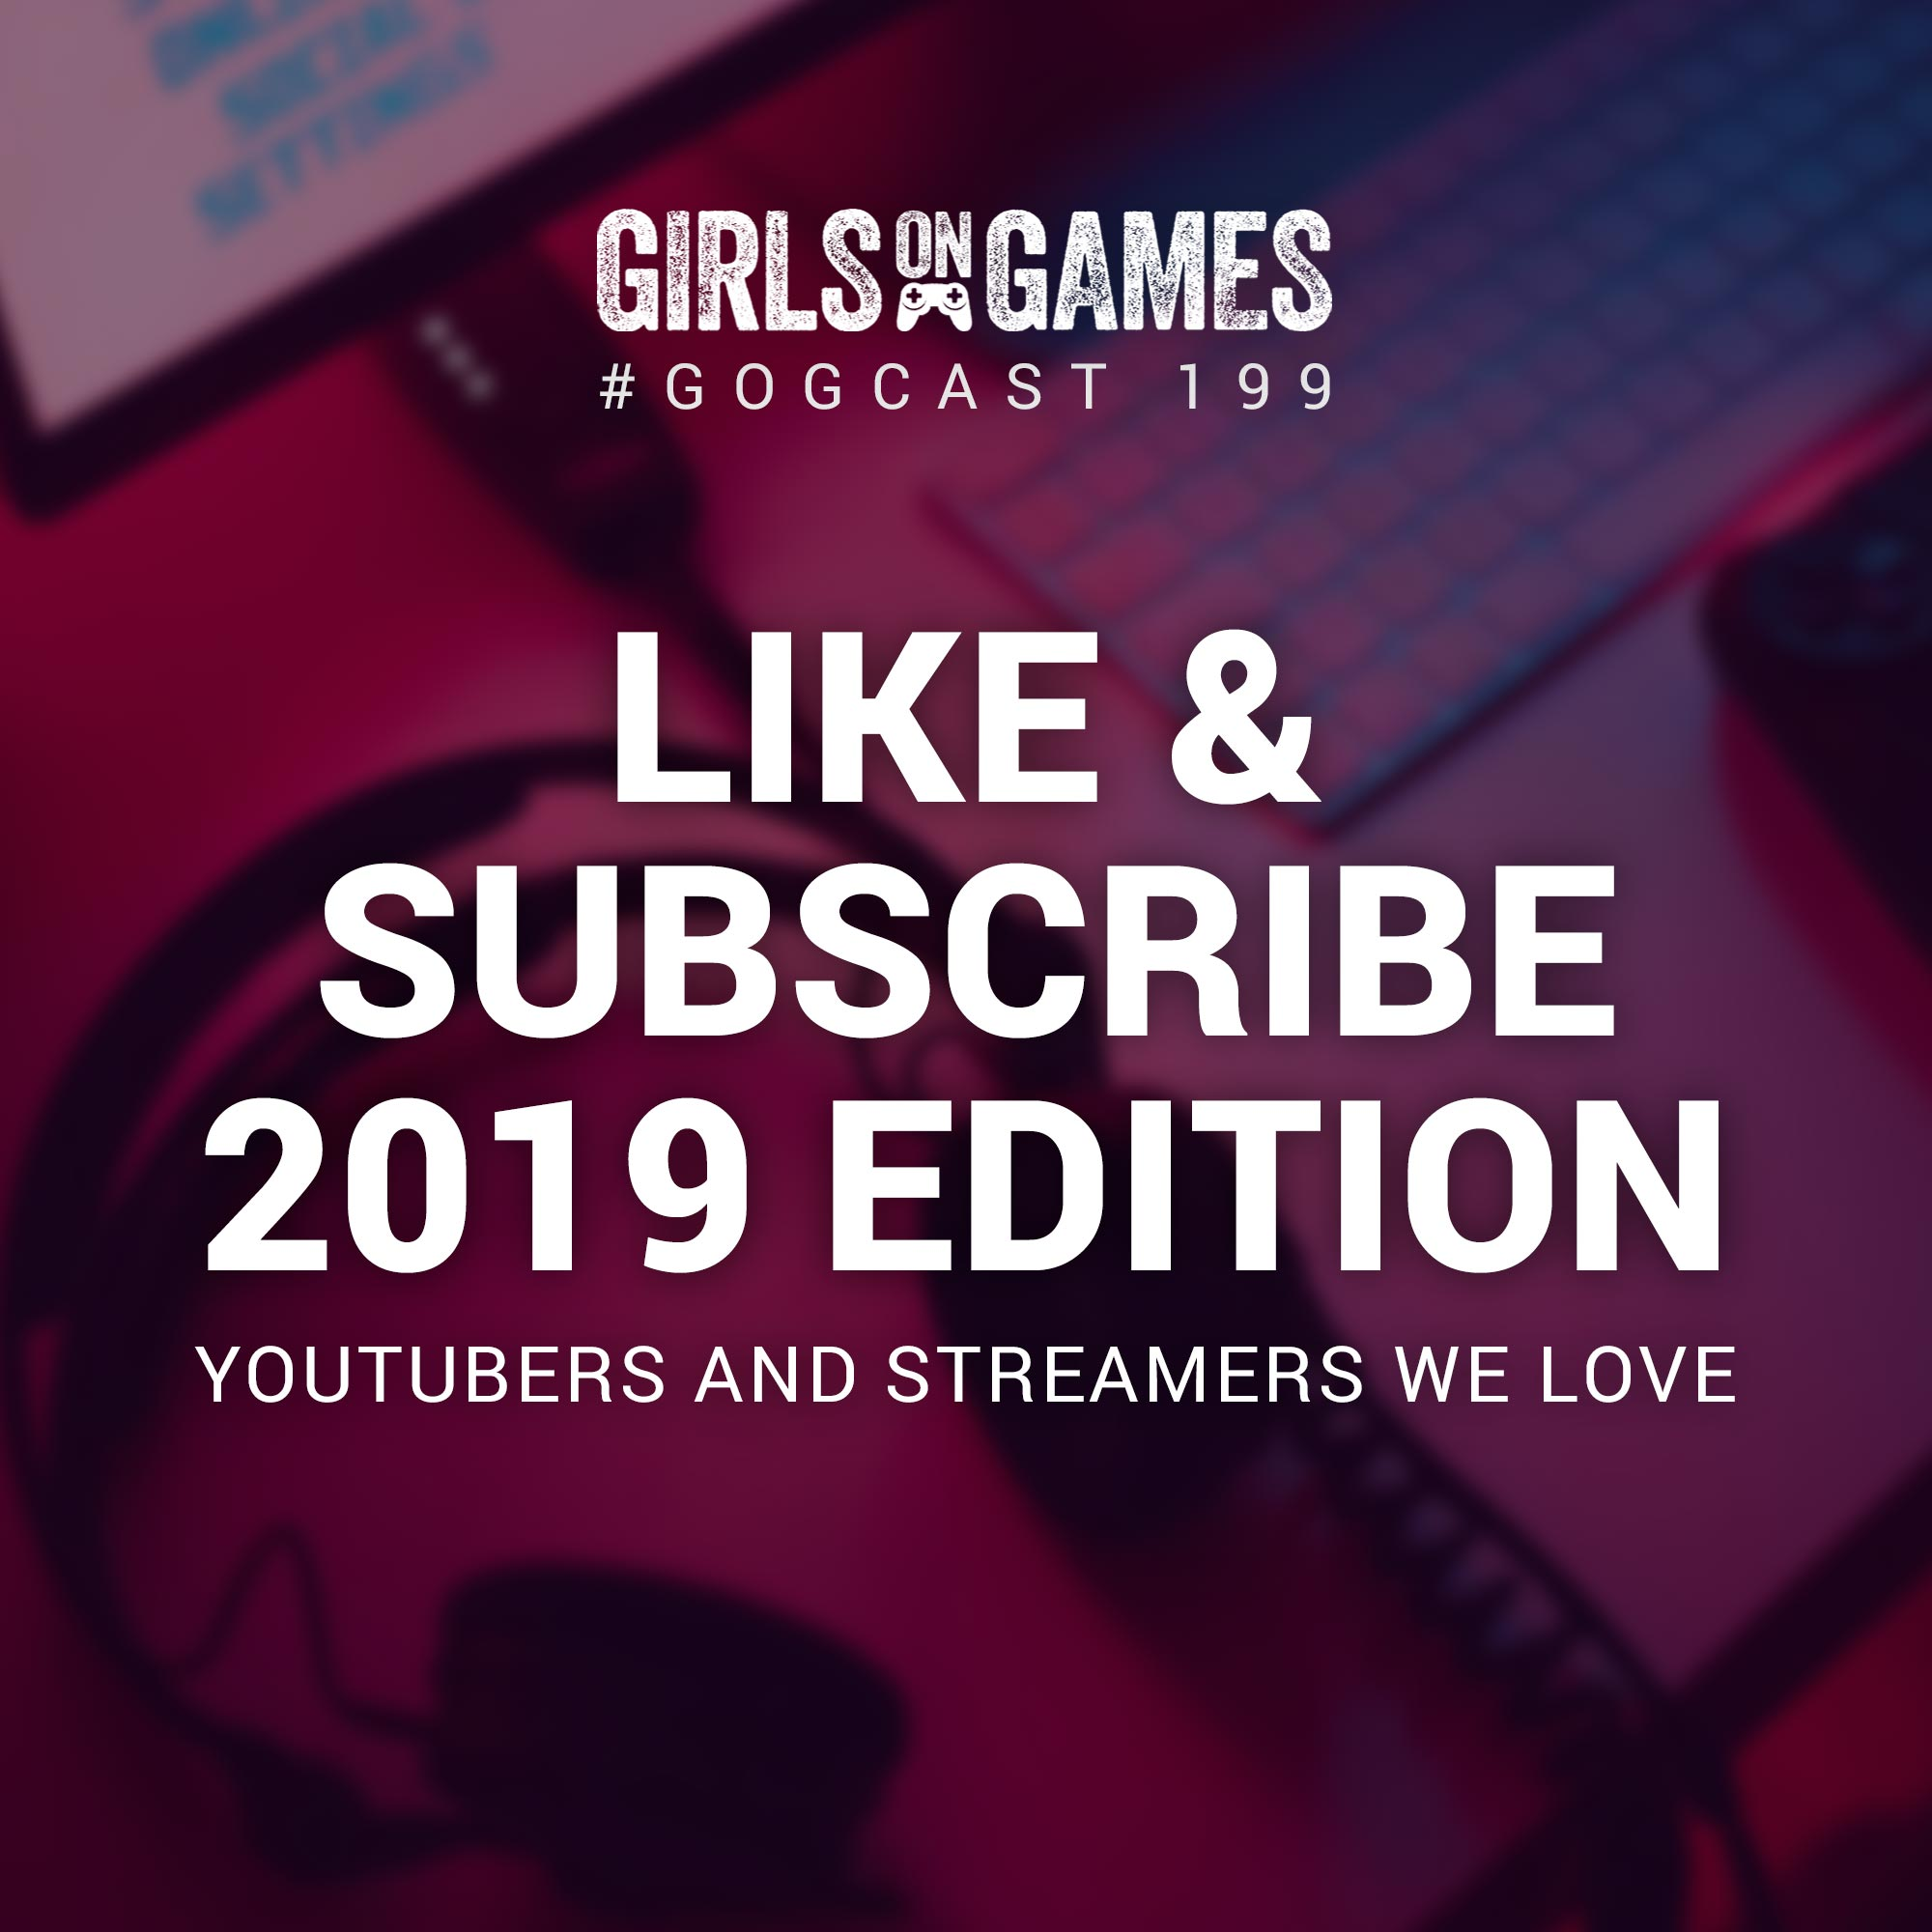 Like & Subscribe 2019 Edition - GoGCast 199